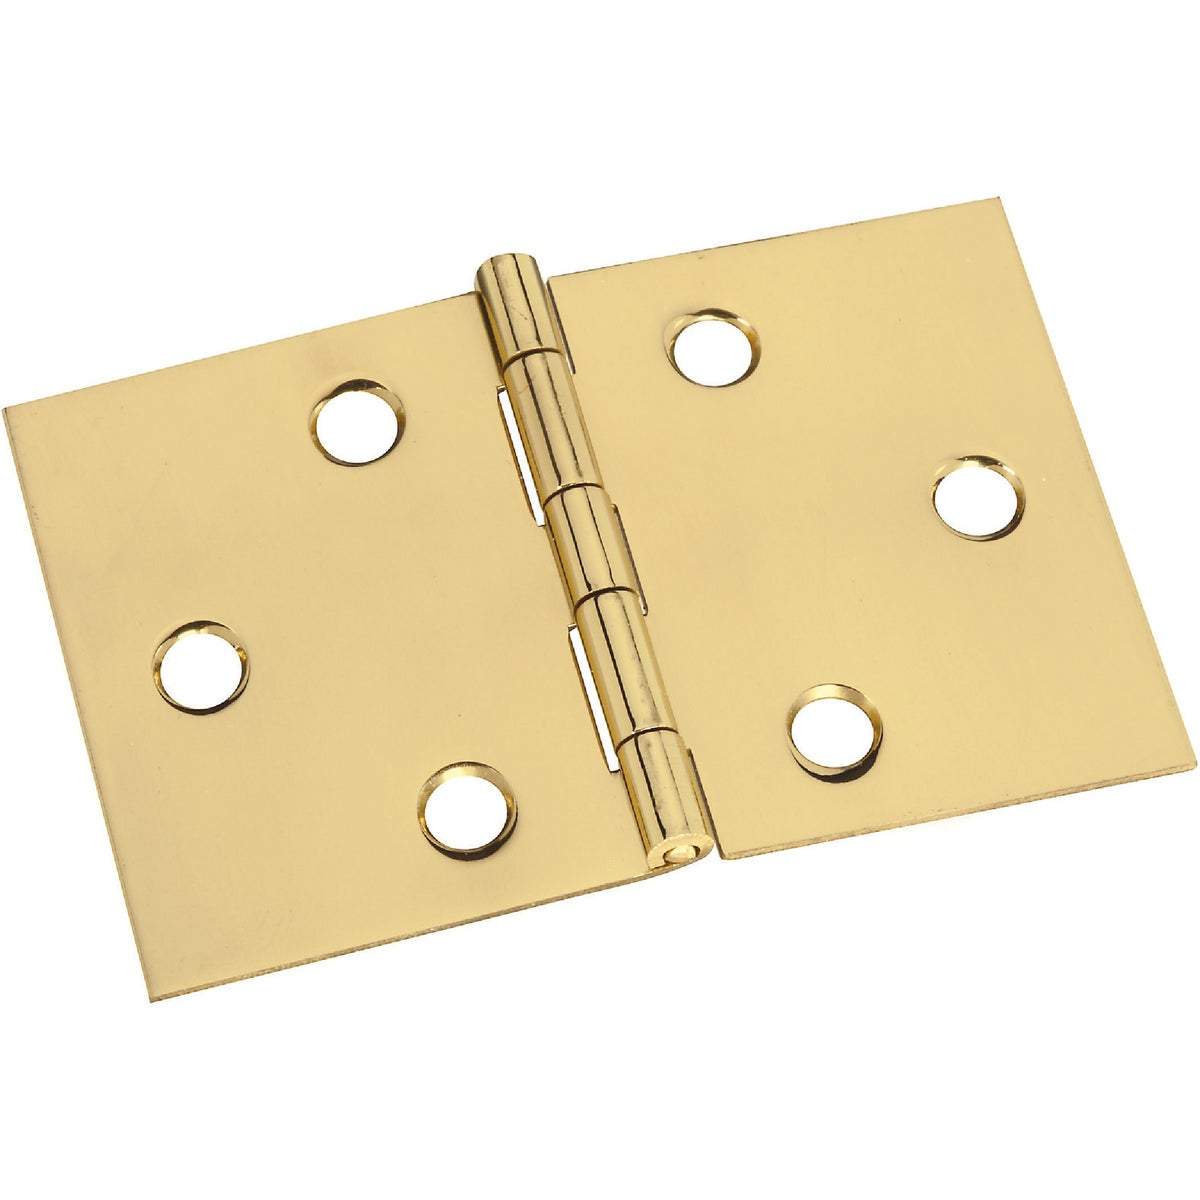 2X3-1/16 SBRS DESK HINGE - N211888 by National Mfg Co